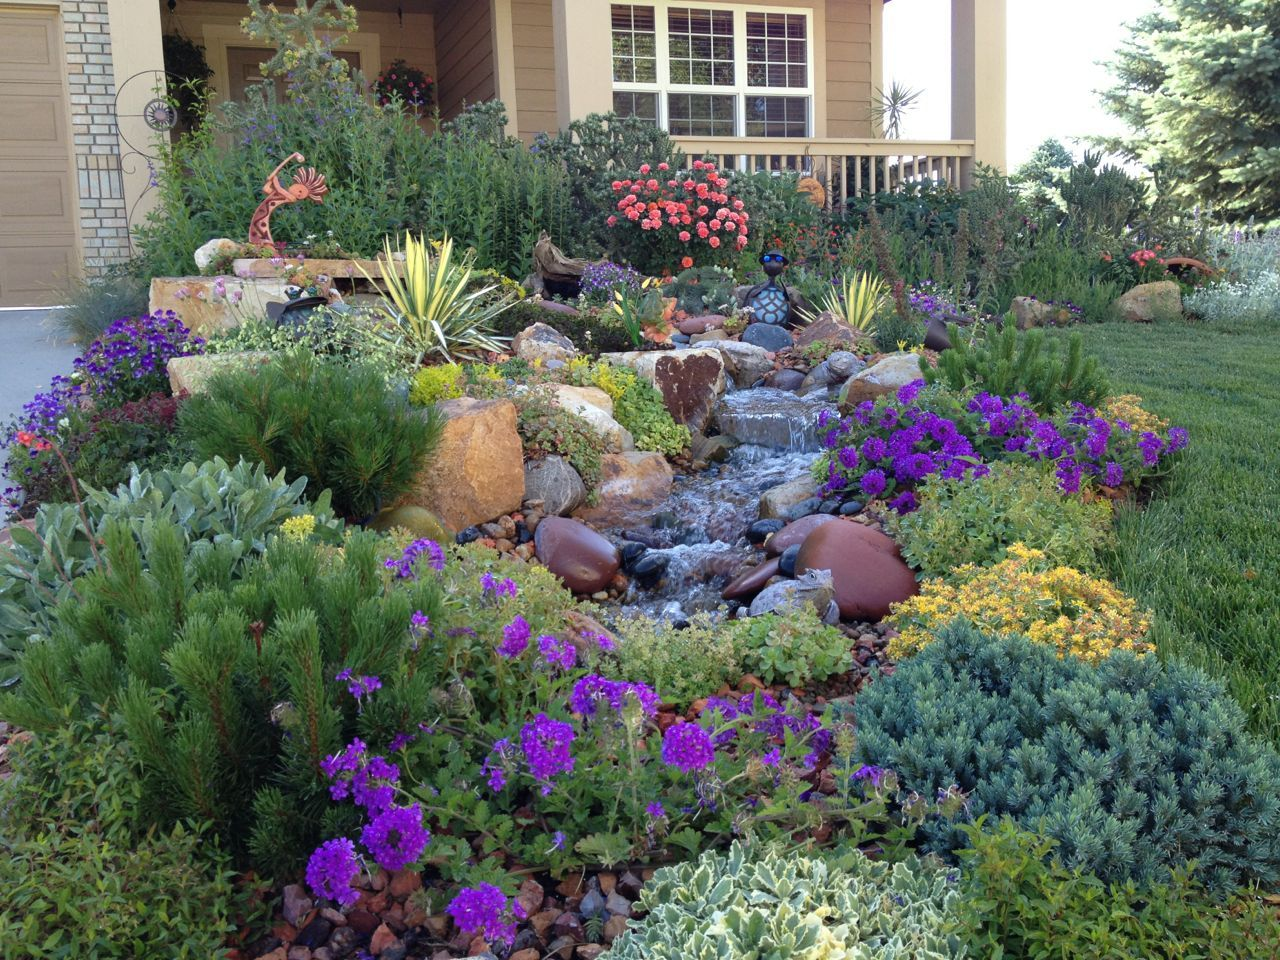 Cottage Style Garden Ideas cottage style garden ideas find this pin and more on rustic cottage style gardens gorgeous cottage Florida Cottage Style Landscape Google Search Landscaping Ideasbackyard